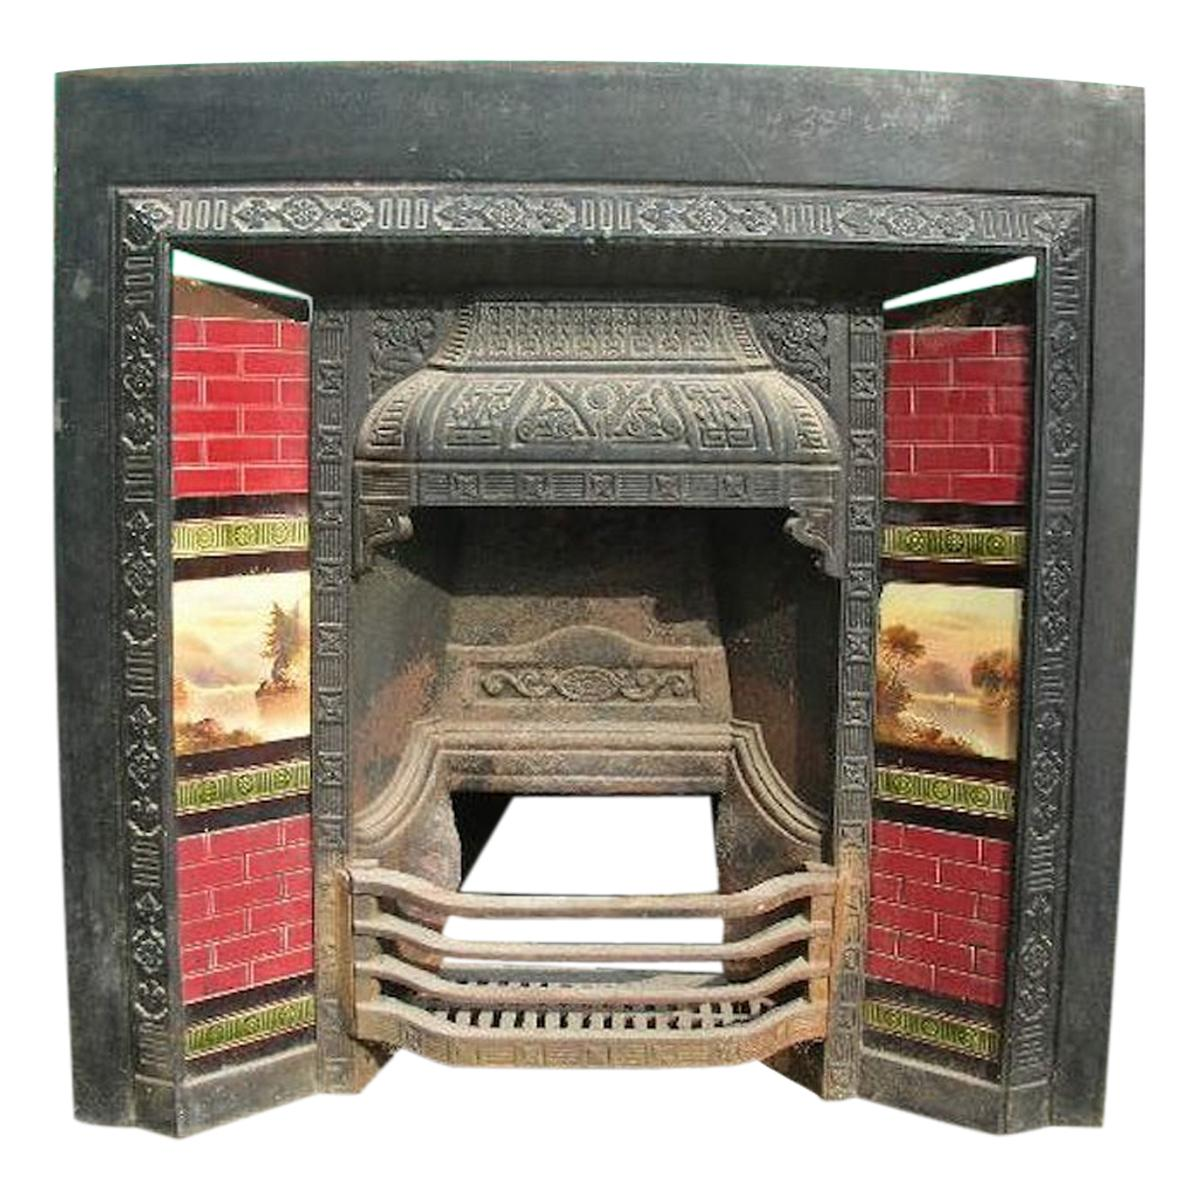 Aesthetic Movement Cast Iron Tiled Fire Insert with Hand Painted Sailing Scenes